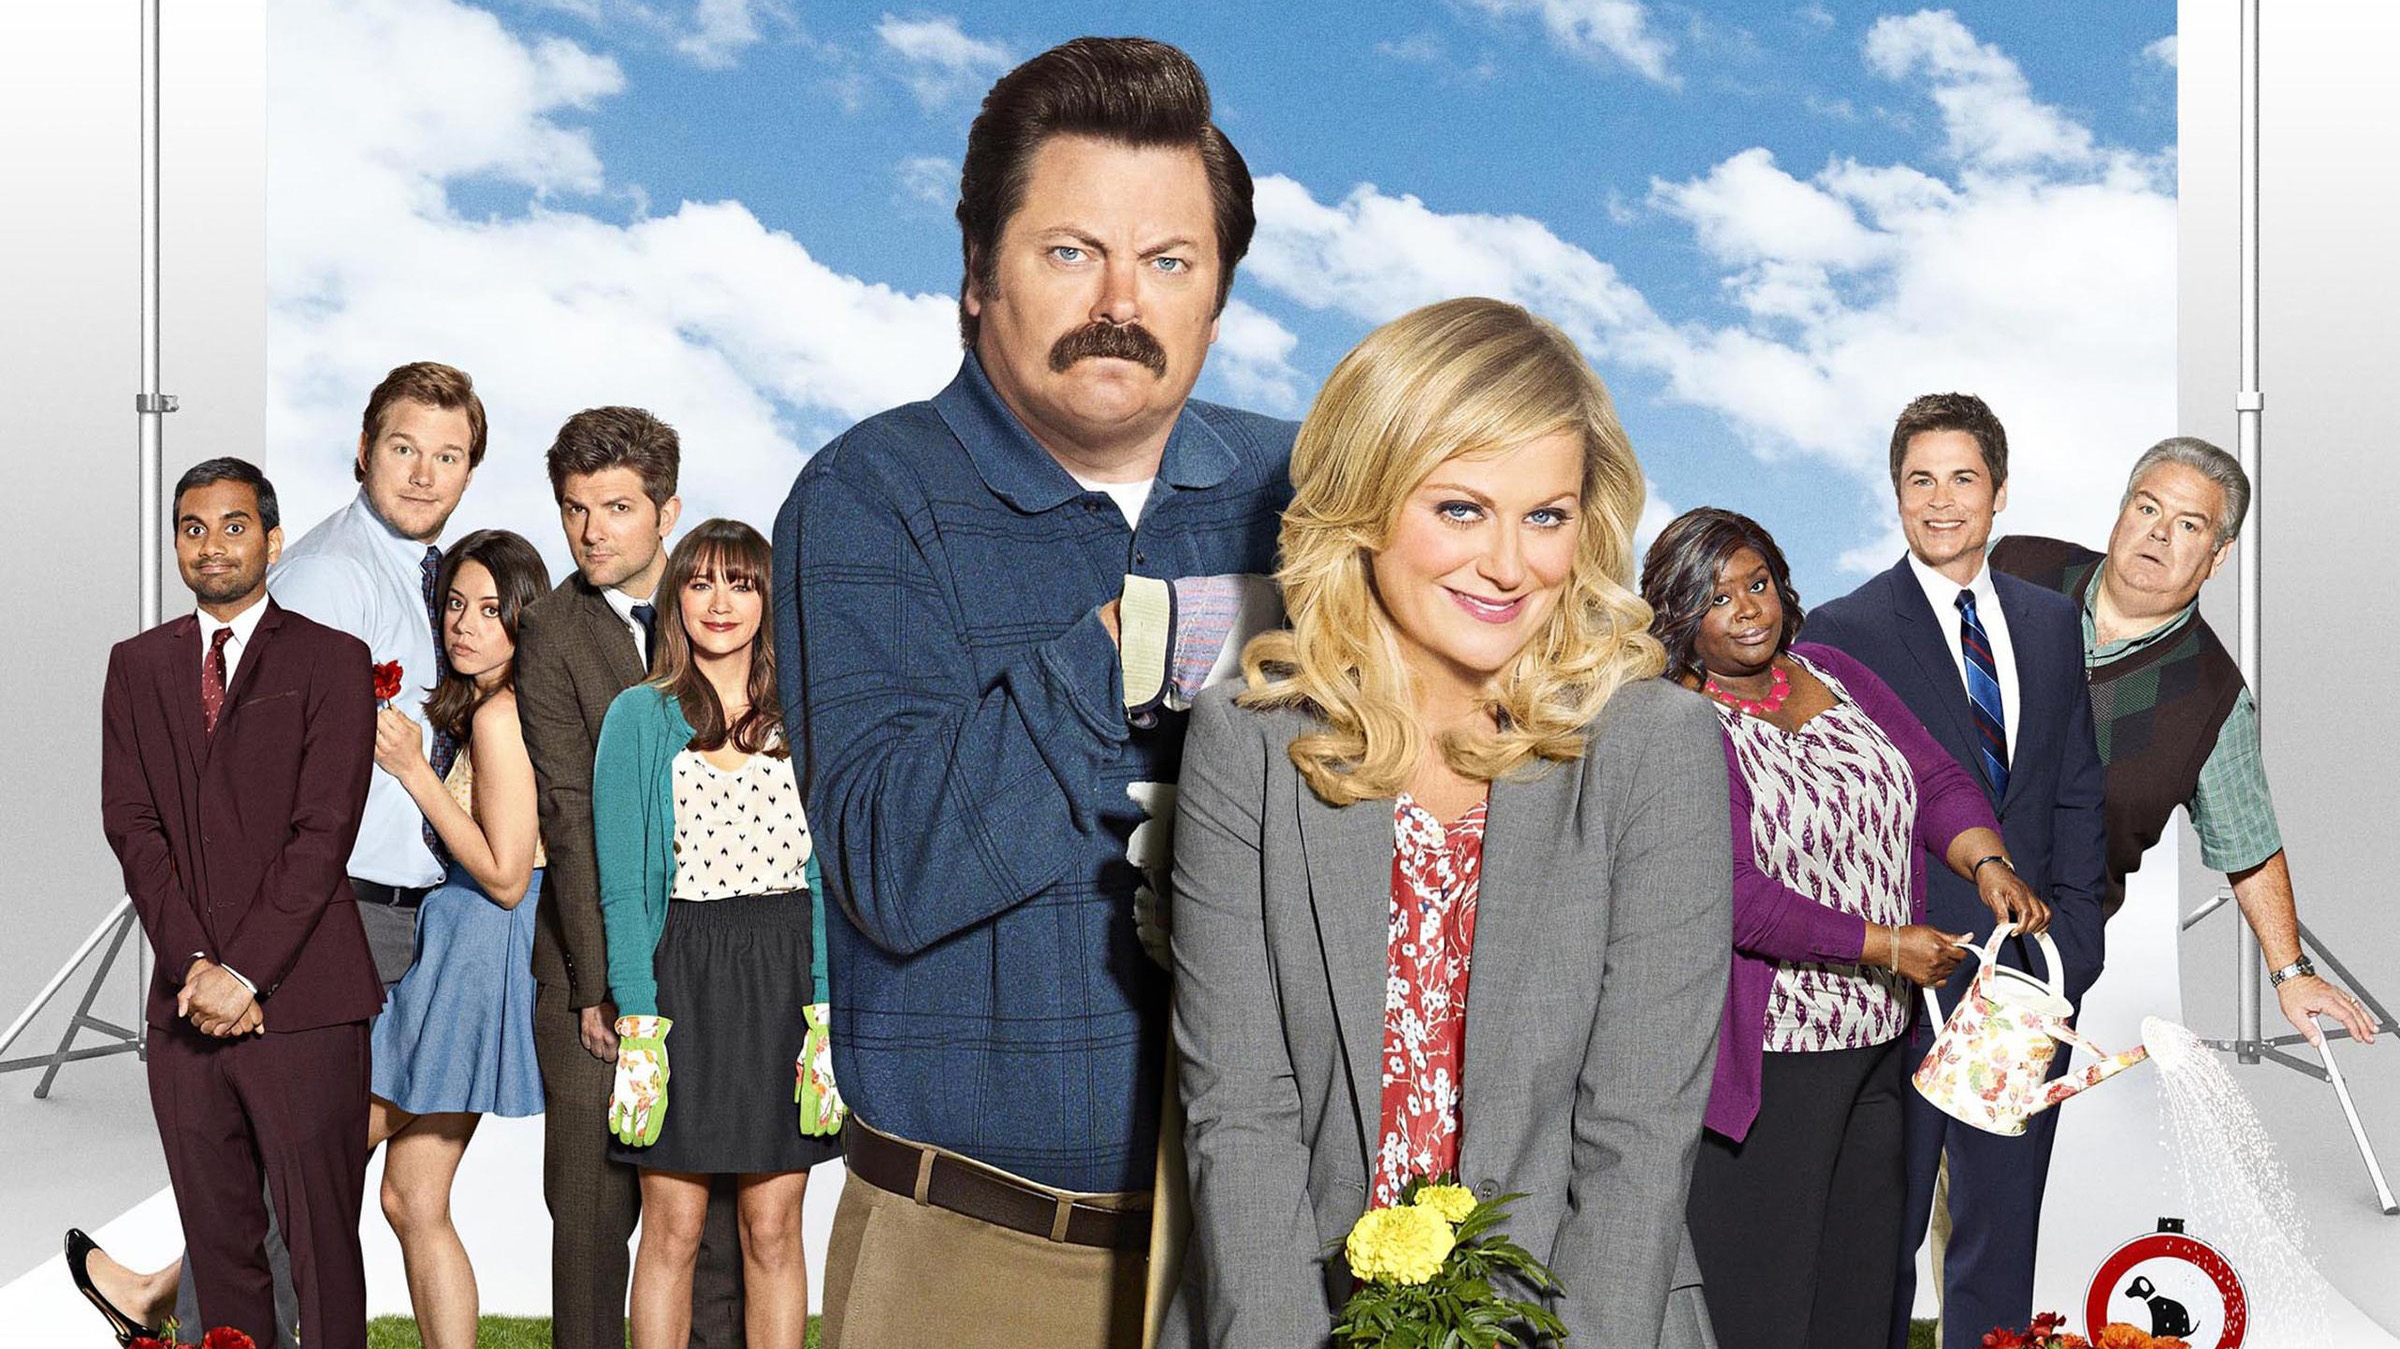 Parks And Recreation Reunion Streaming How To Watch The Special And The Rest Of The Series Online